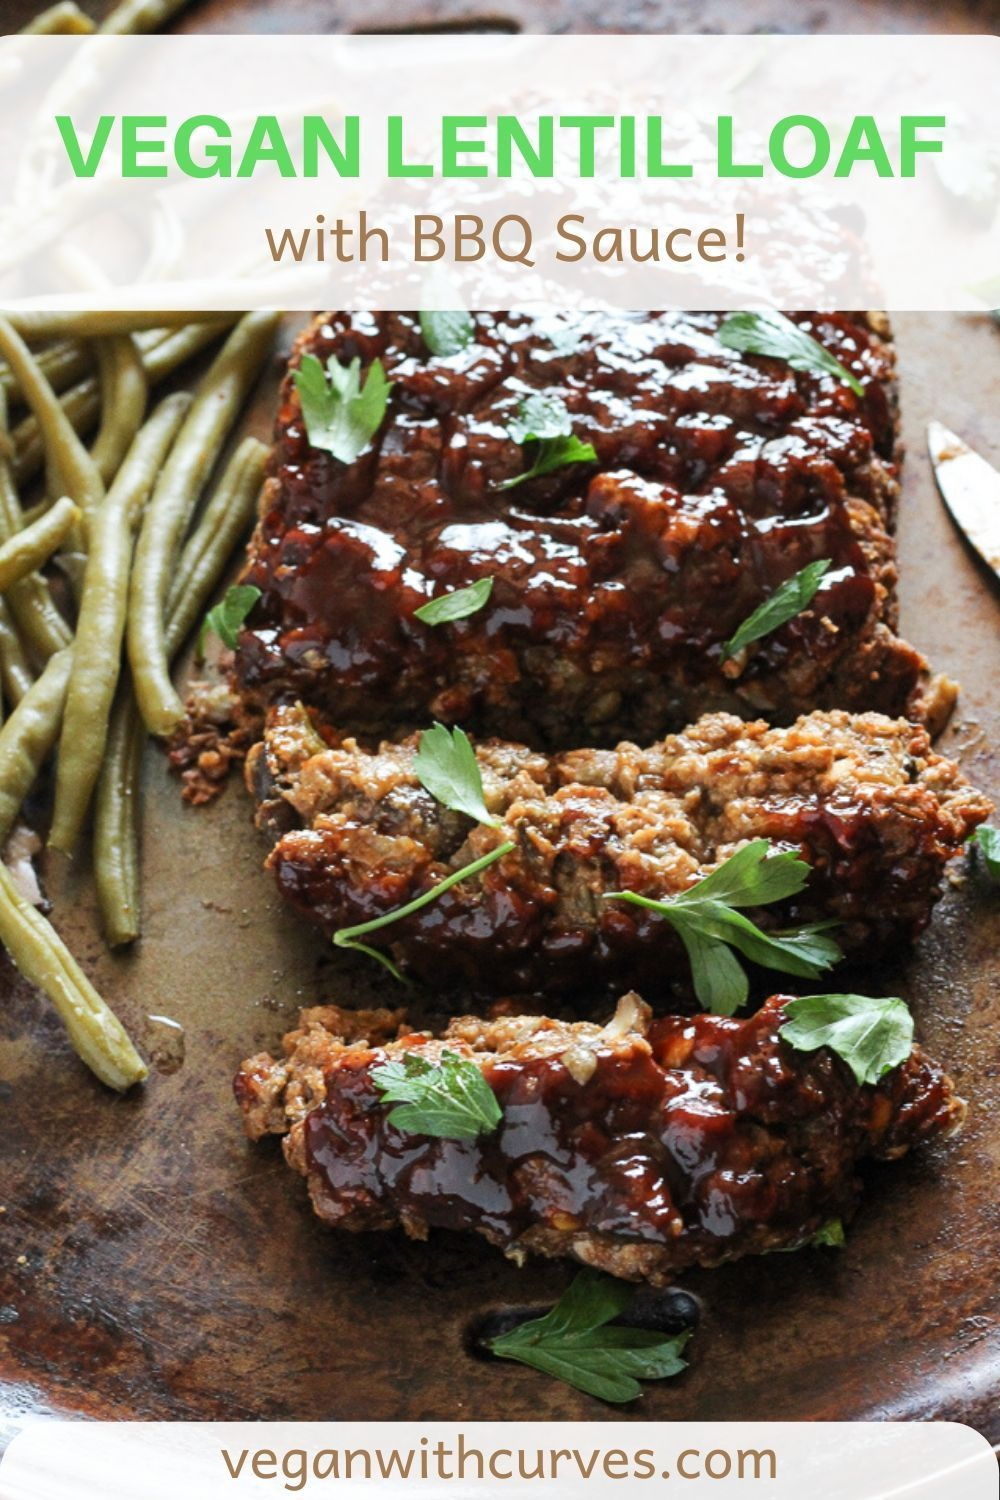 Beefy Vegan Lentil Loaf Recipe In 2020 Vegan Ground Beef Meat Dinners Lentil Loaf